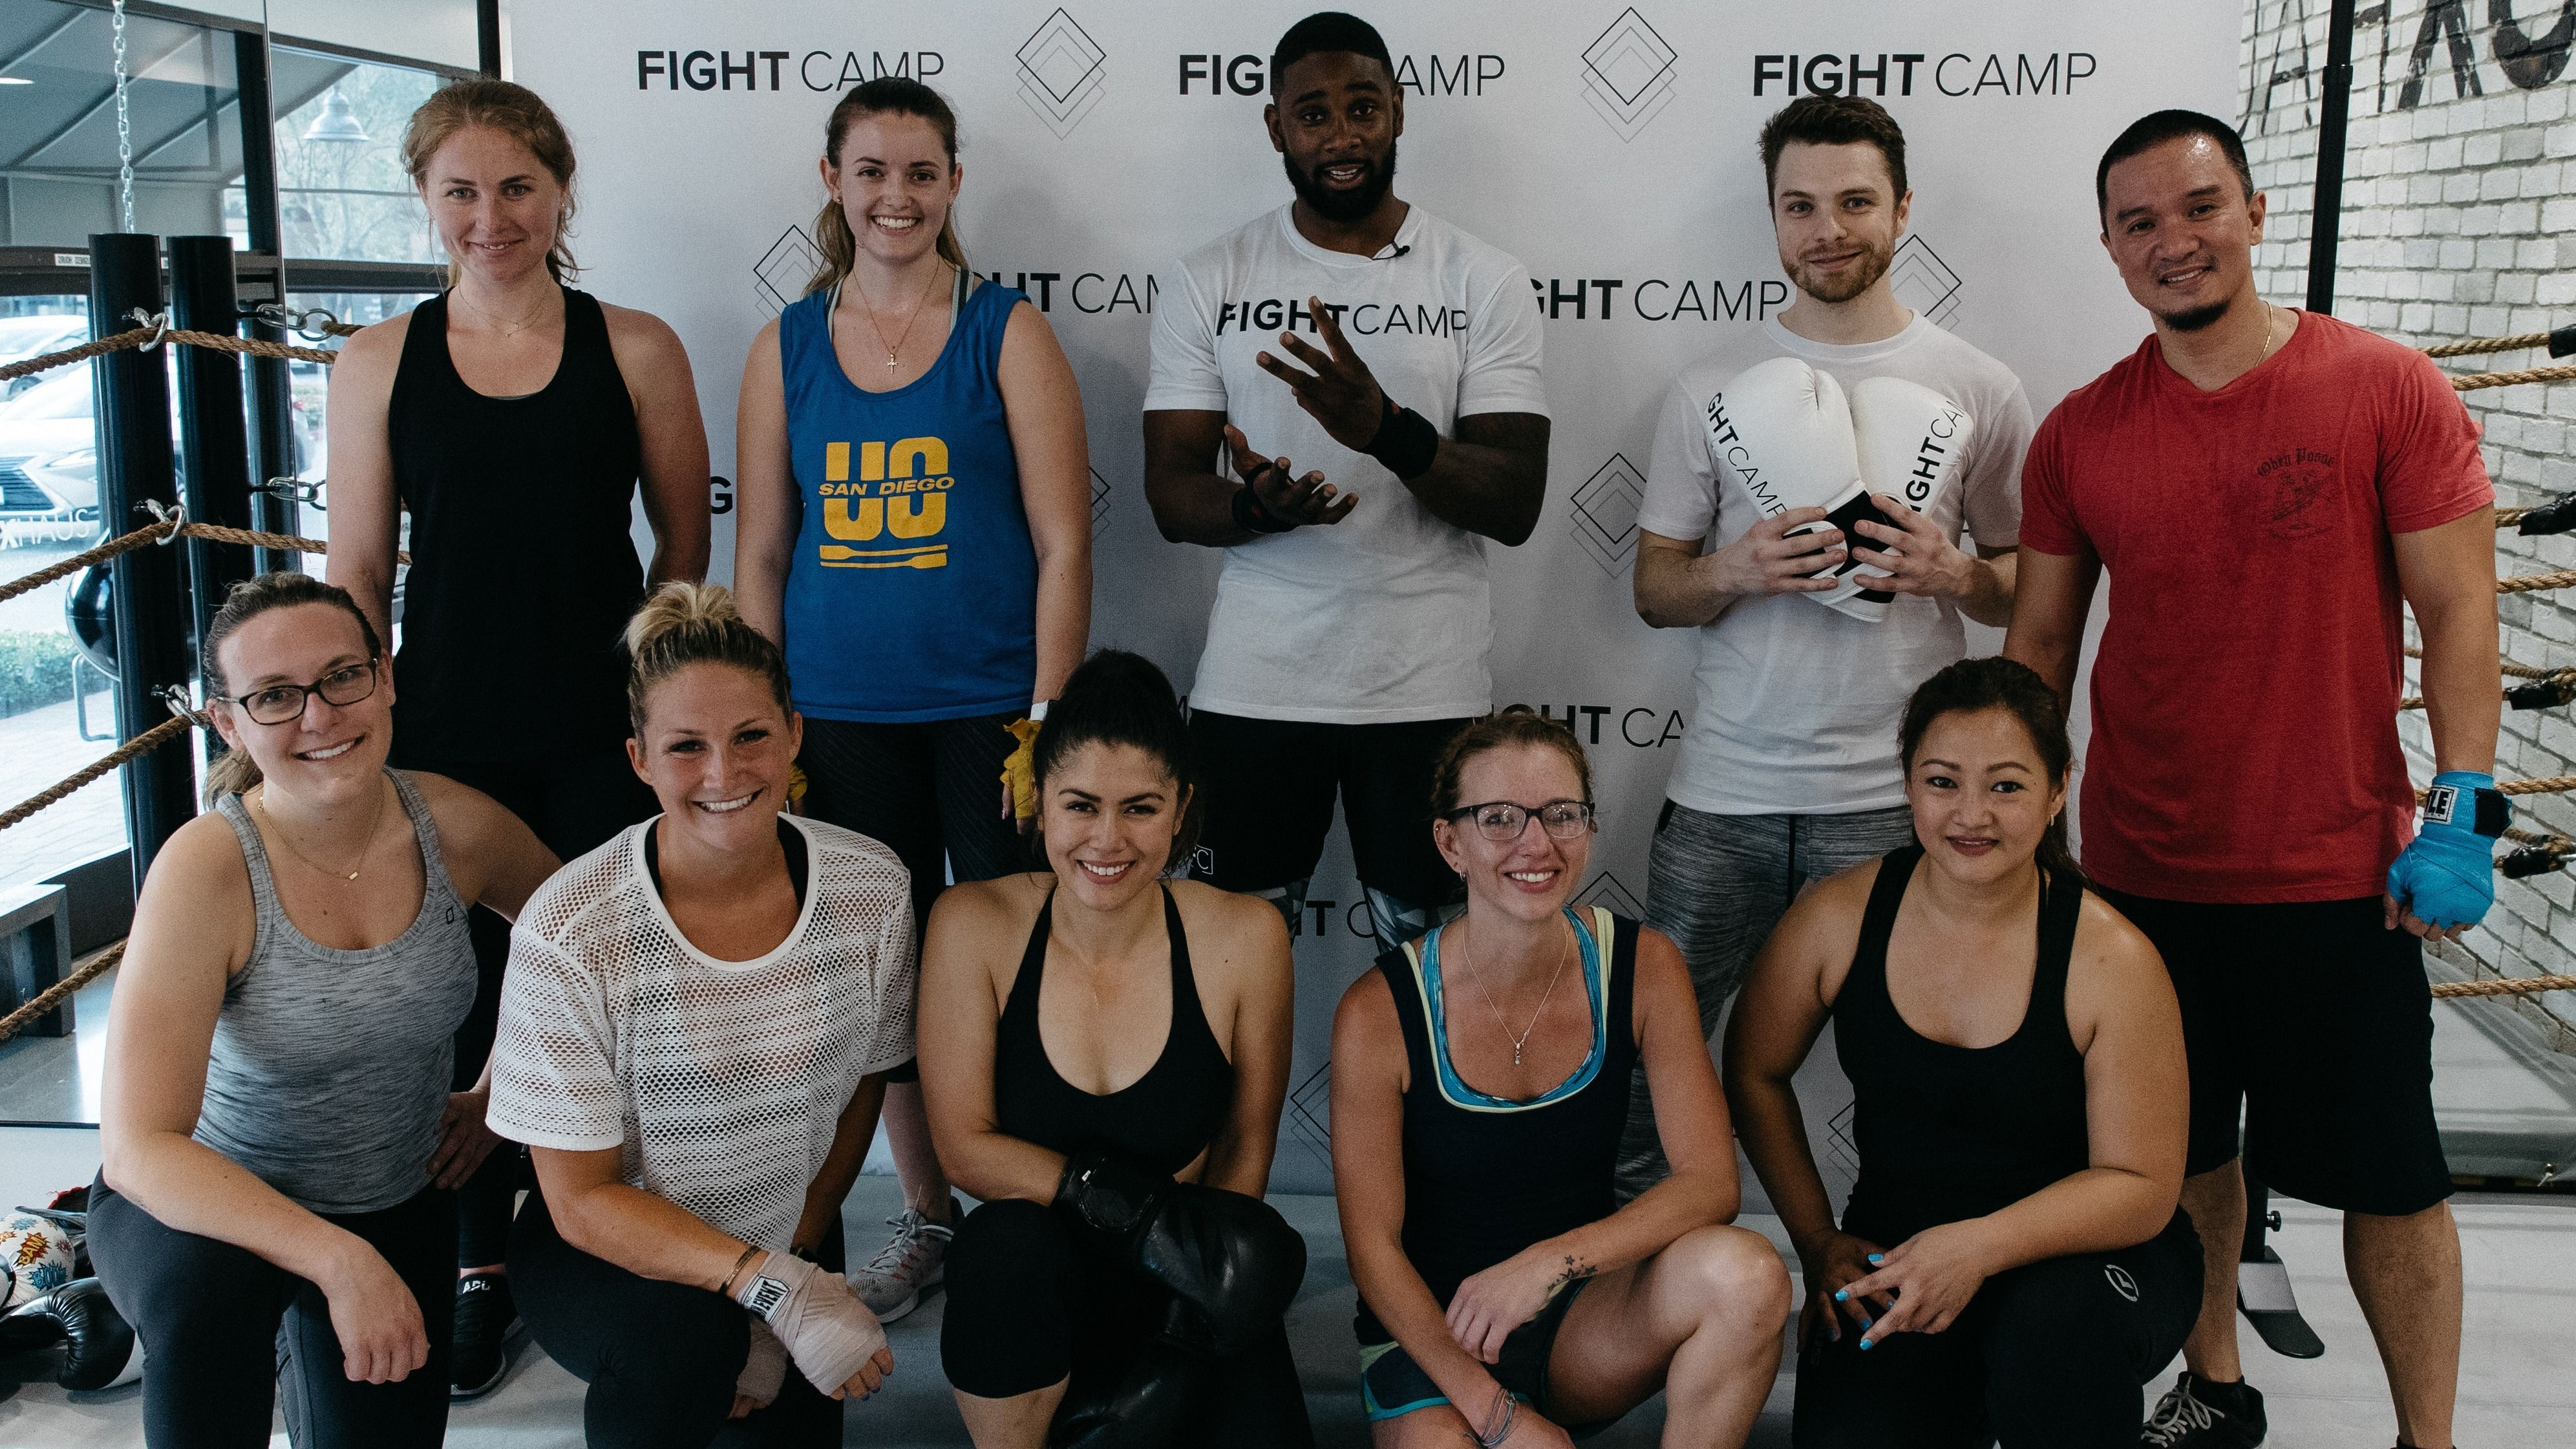 FightCamp: Newport's Free Fitness Boxing Club!